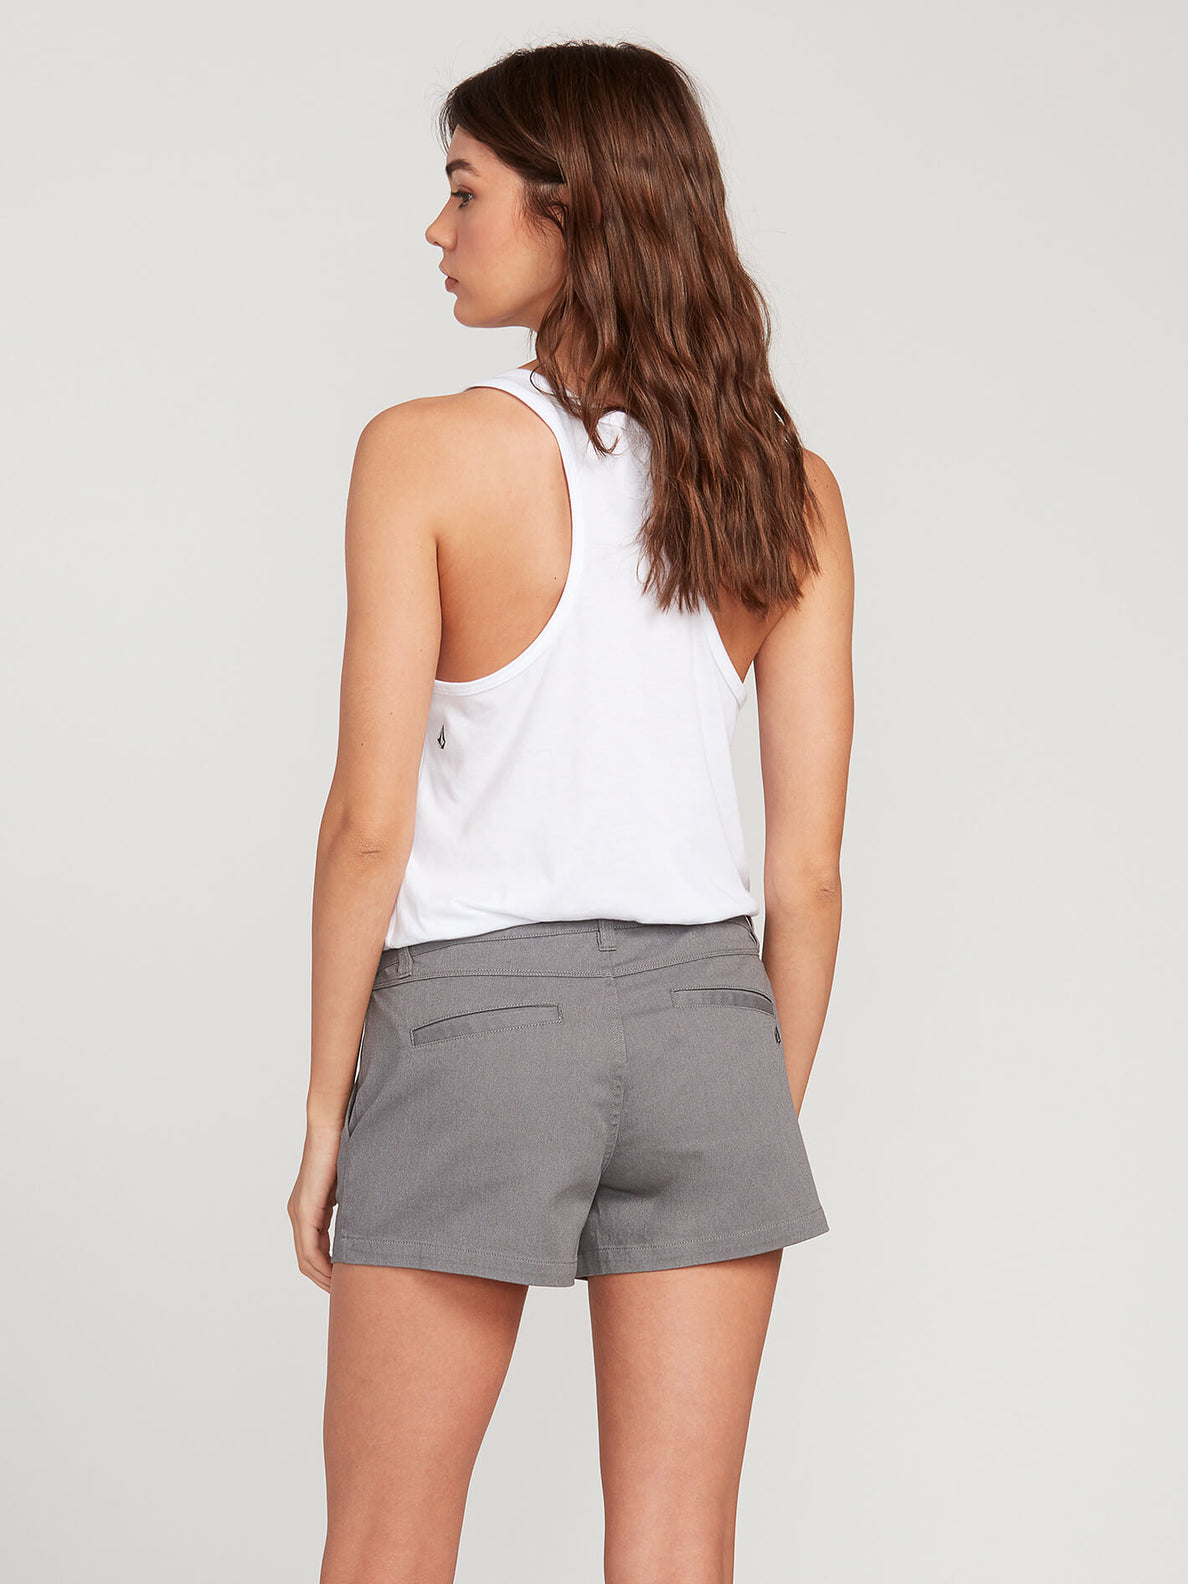 Frochickie Shorts - Heather Grey (B0911800_HGR) [B]